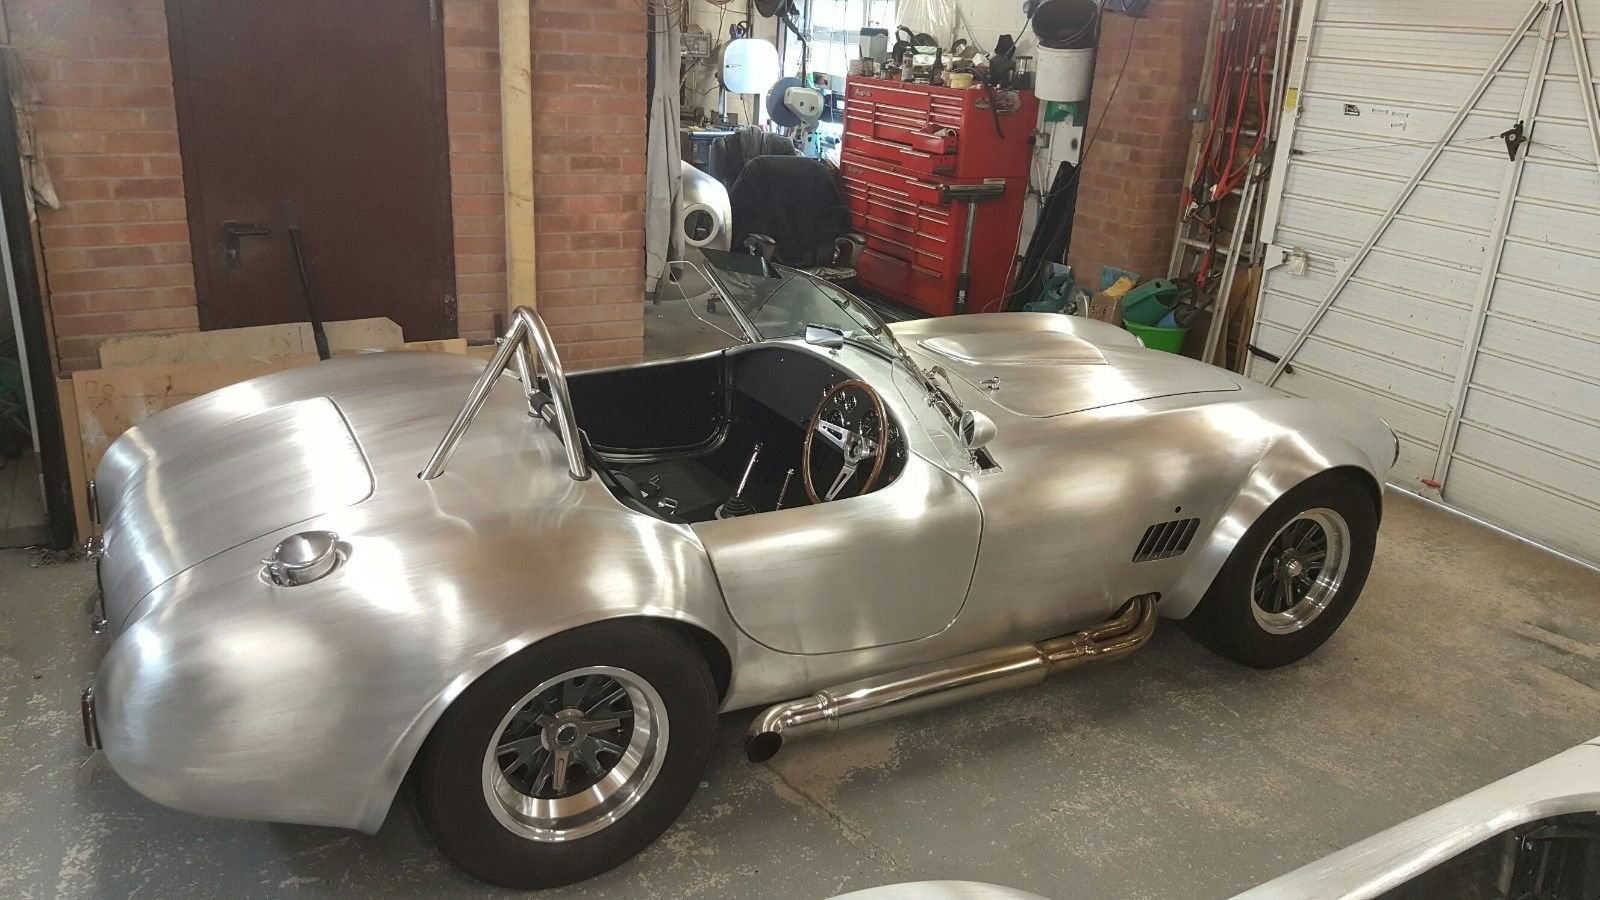 1965 Ac cobra 427 sc toolroom replica For Sale (picture 2 of 6)